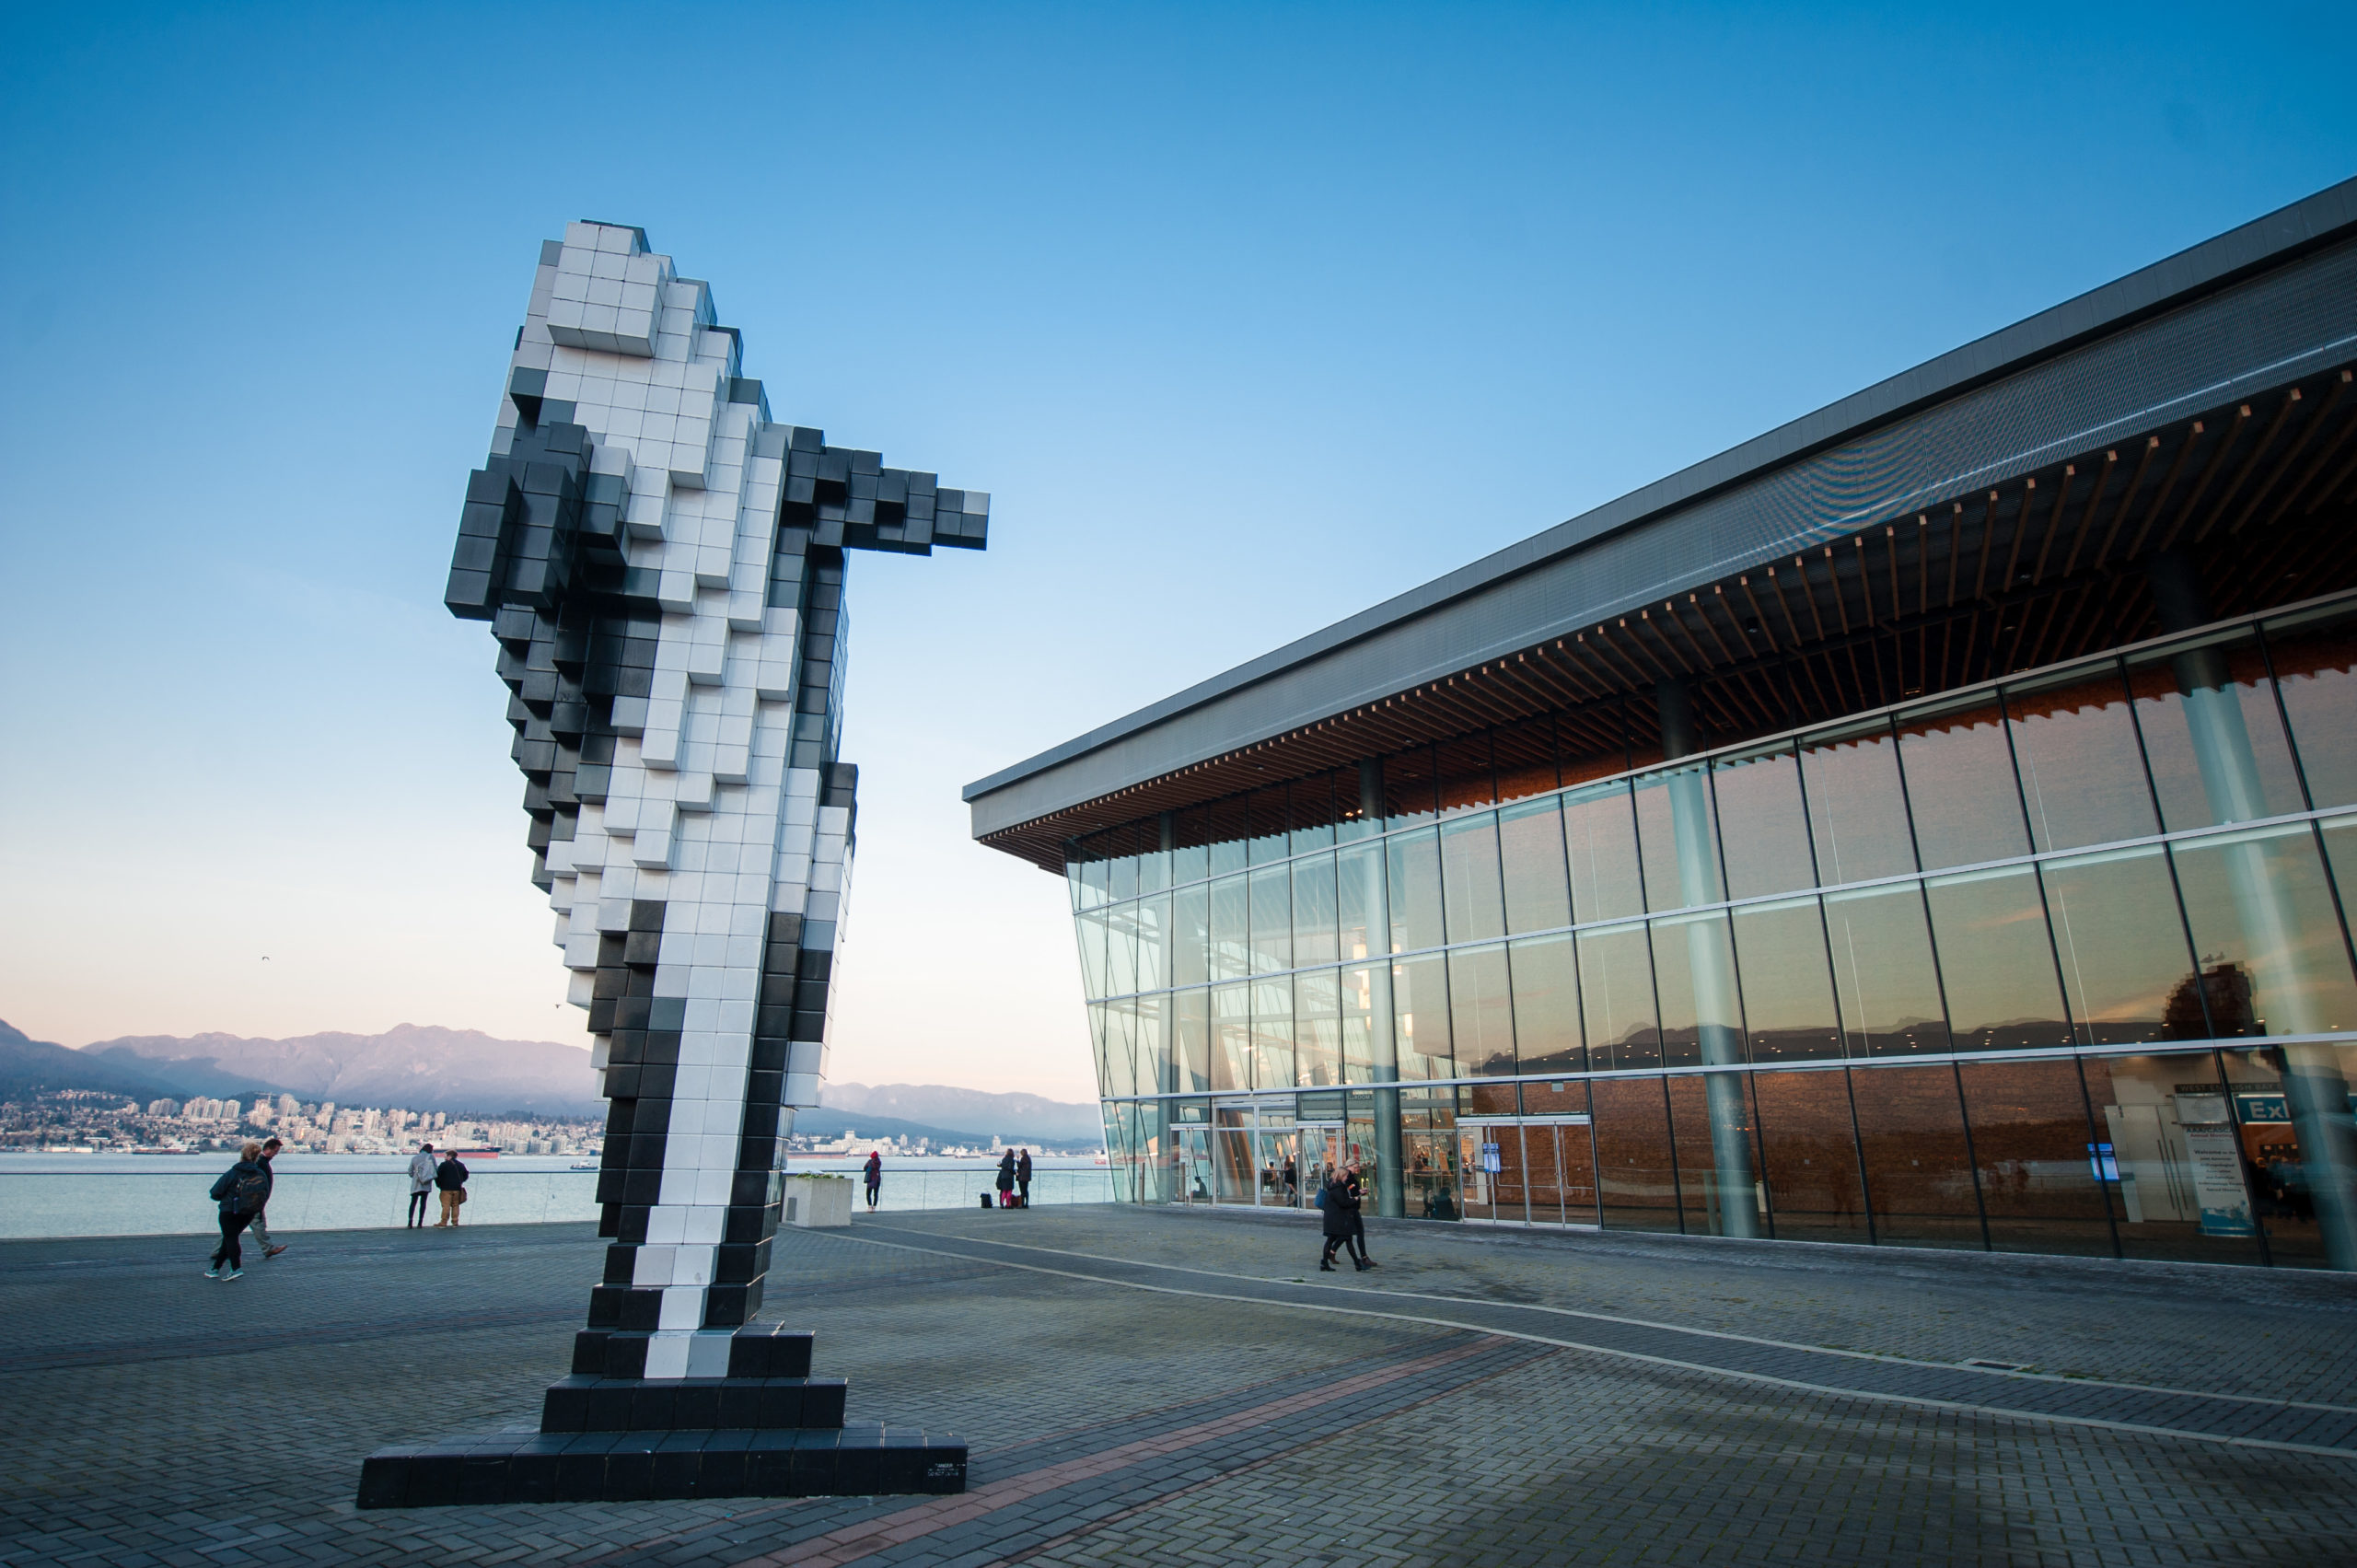 Photo of a courtyard and whale statue outside of the Vancouver Convention Center.